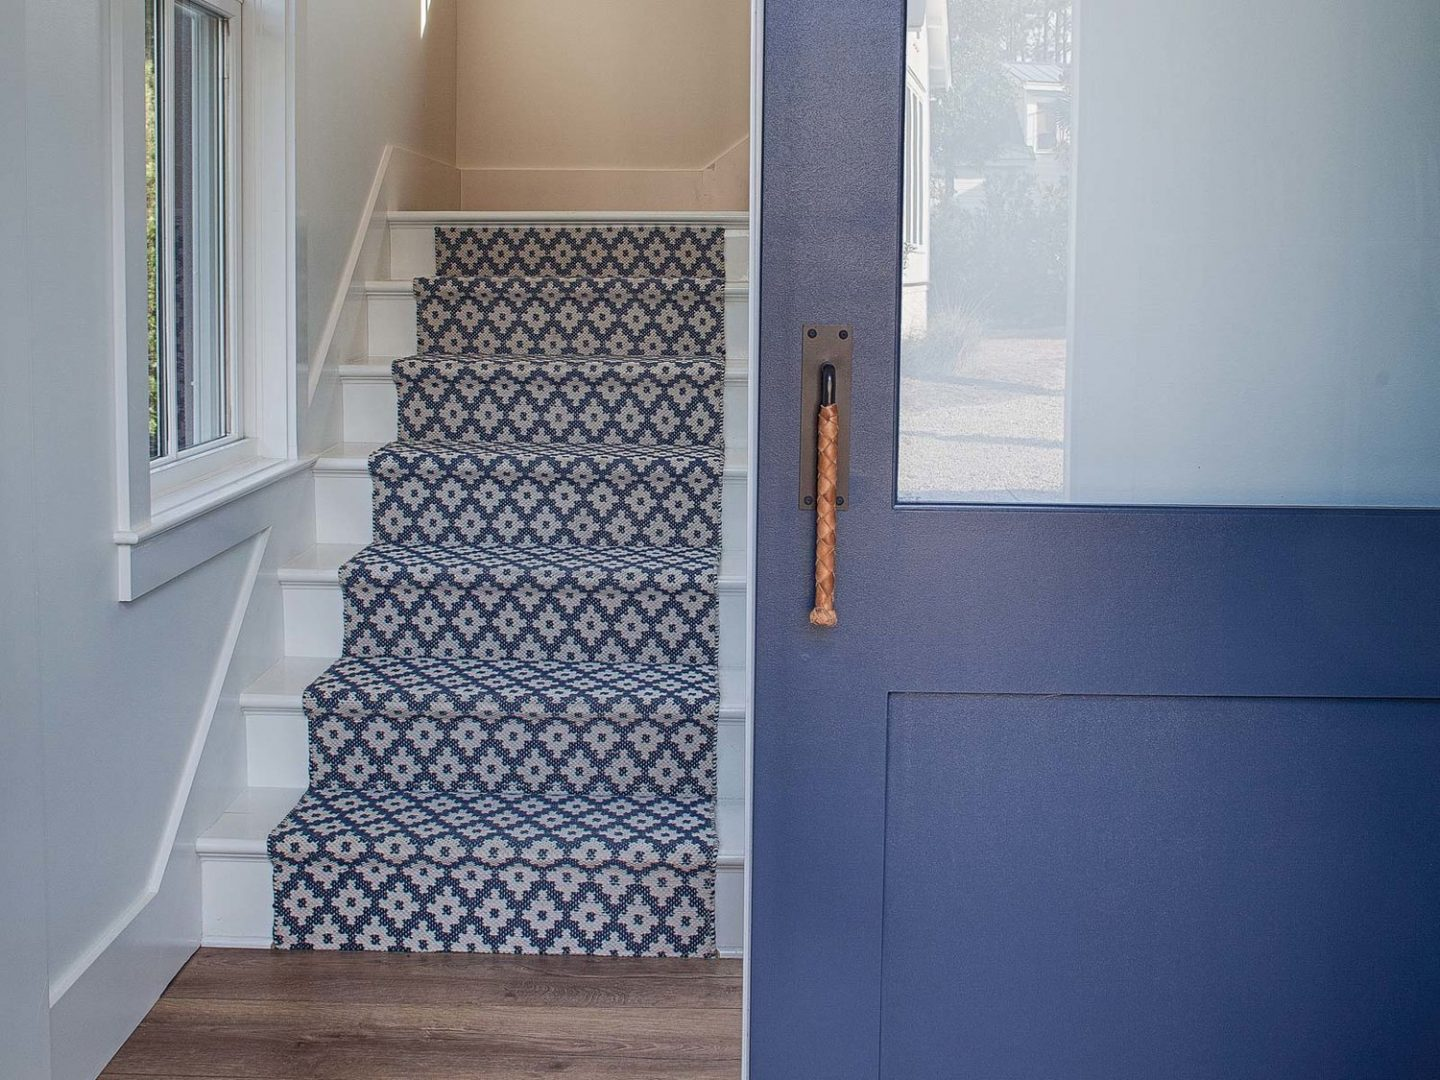 Blue stair runner and door. Board and batten coastal cottage in Palmetto Bluff with modern farmhouse interior design by Lisa Furey.